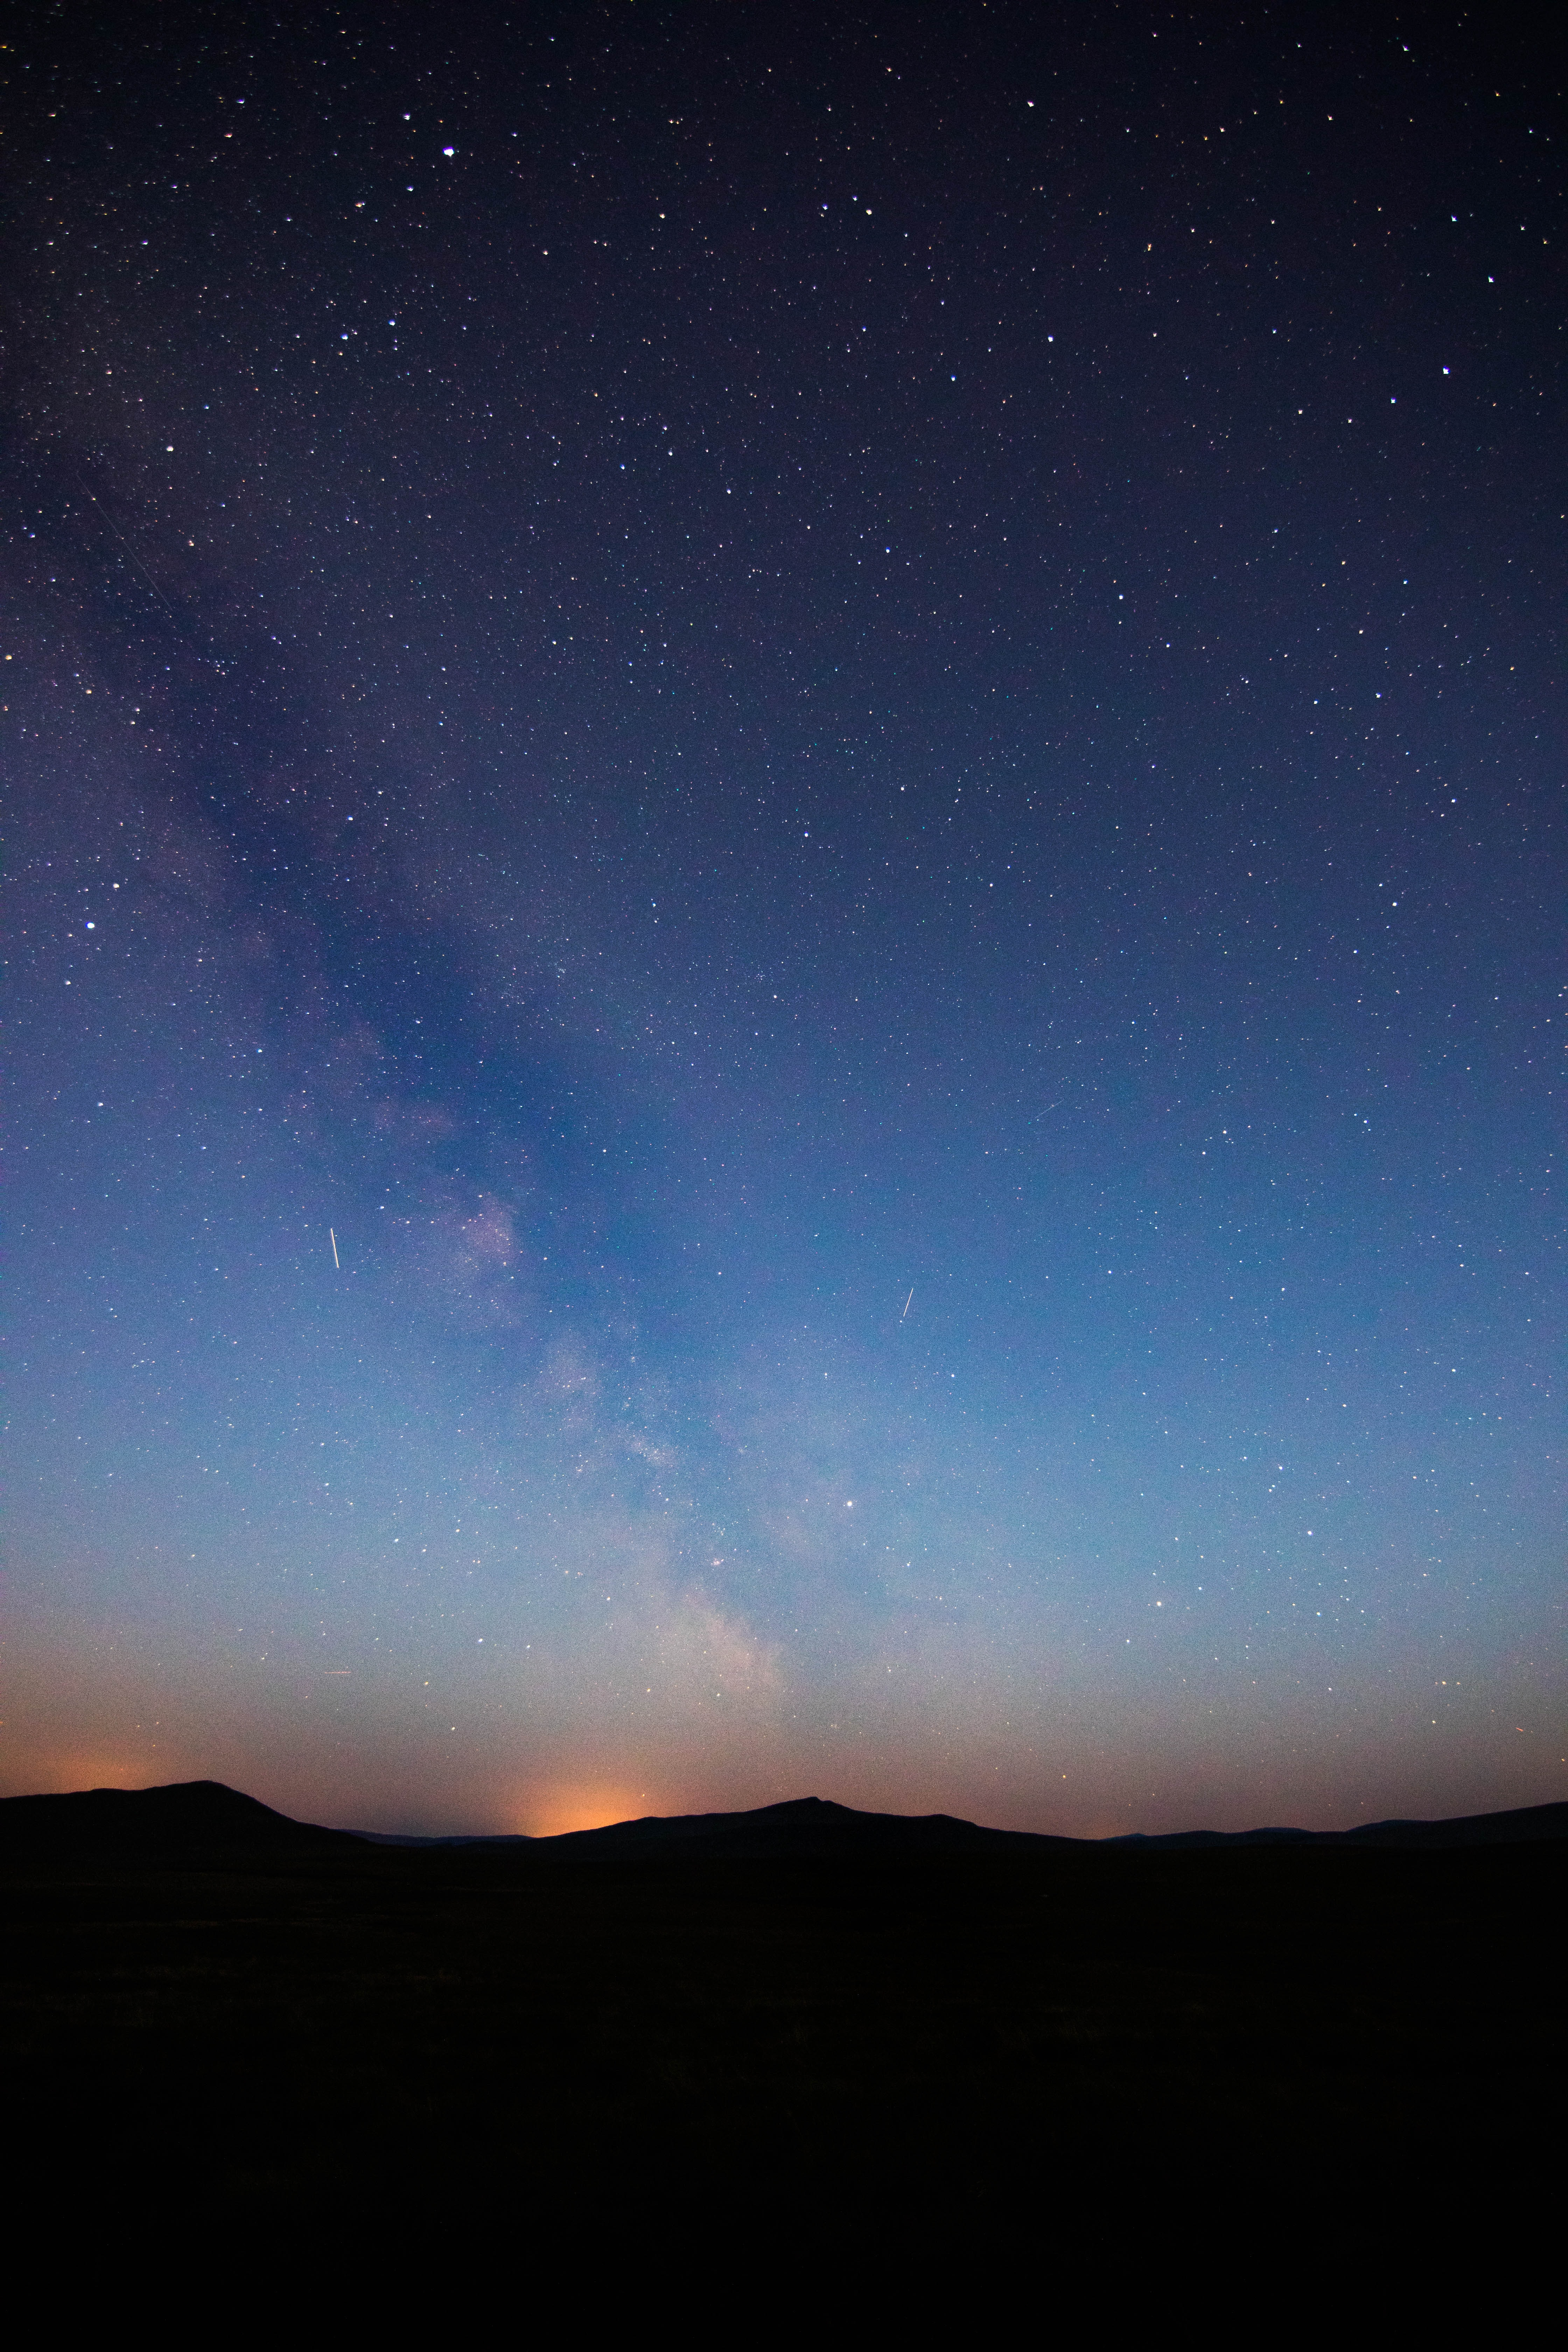 Bright stars in the beautiful dark blue night sky over a silhouette of a mountain range